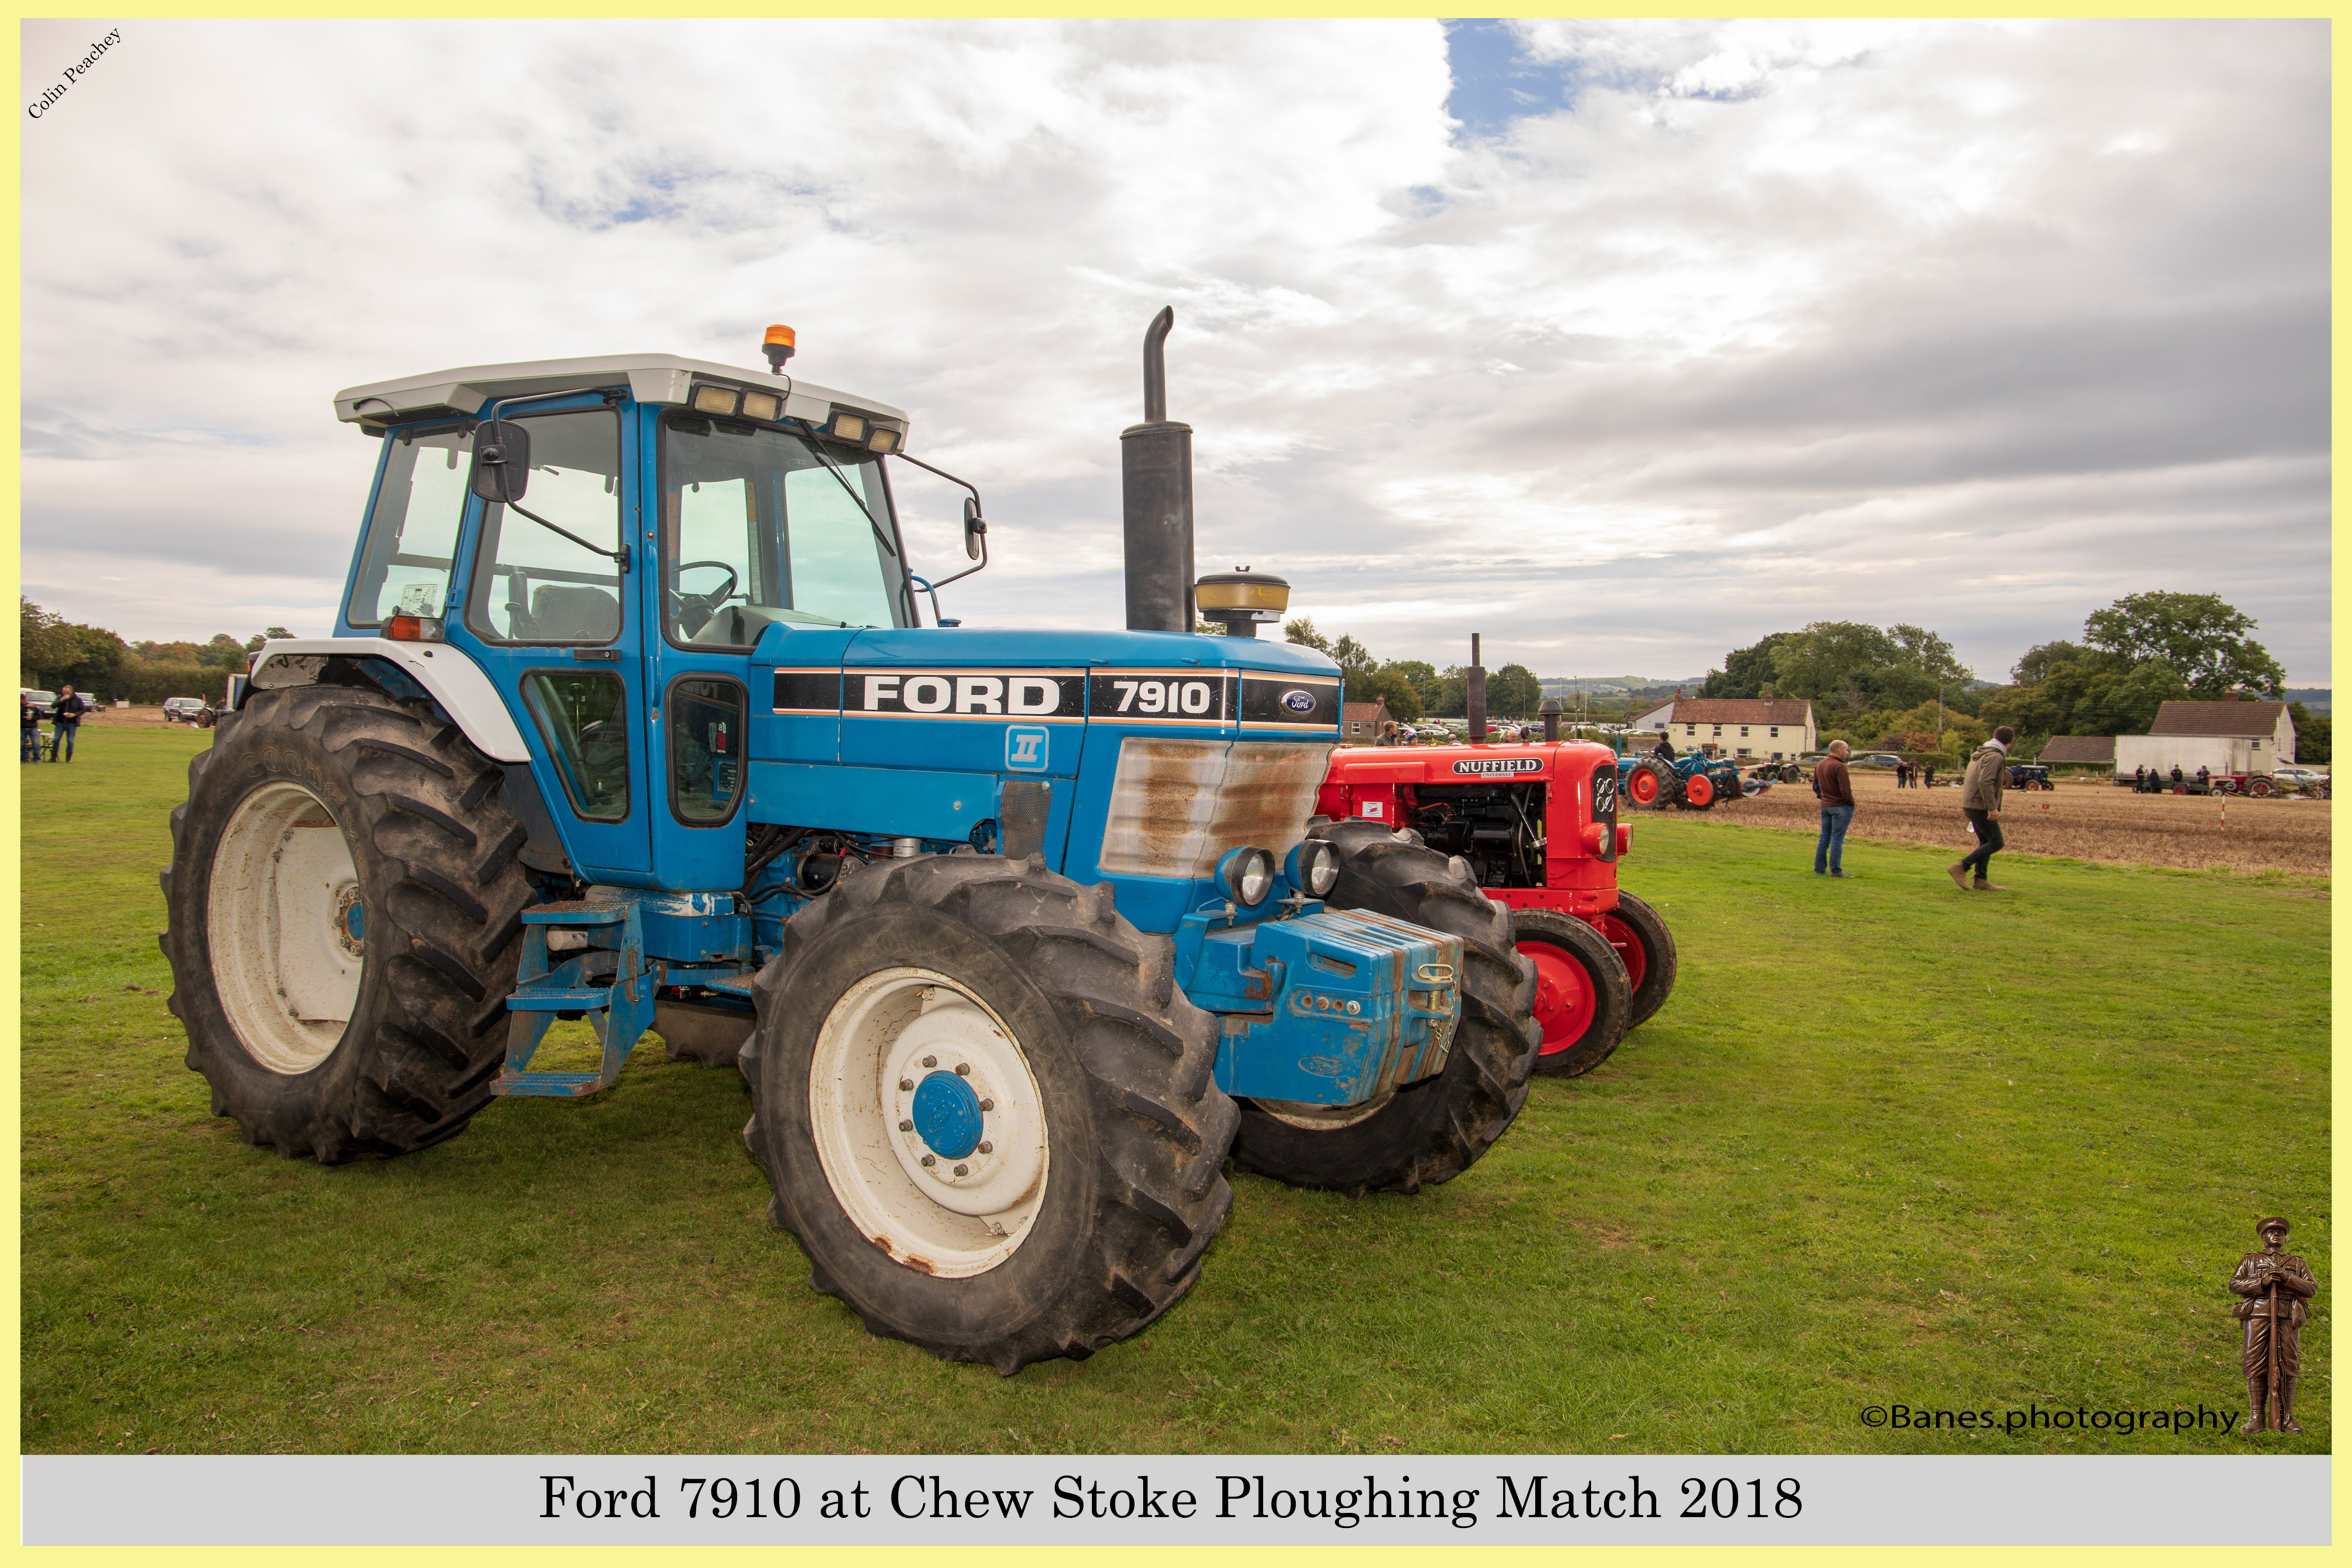 Ford 7910, E928 WCL, at Chew Stoke 2018